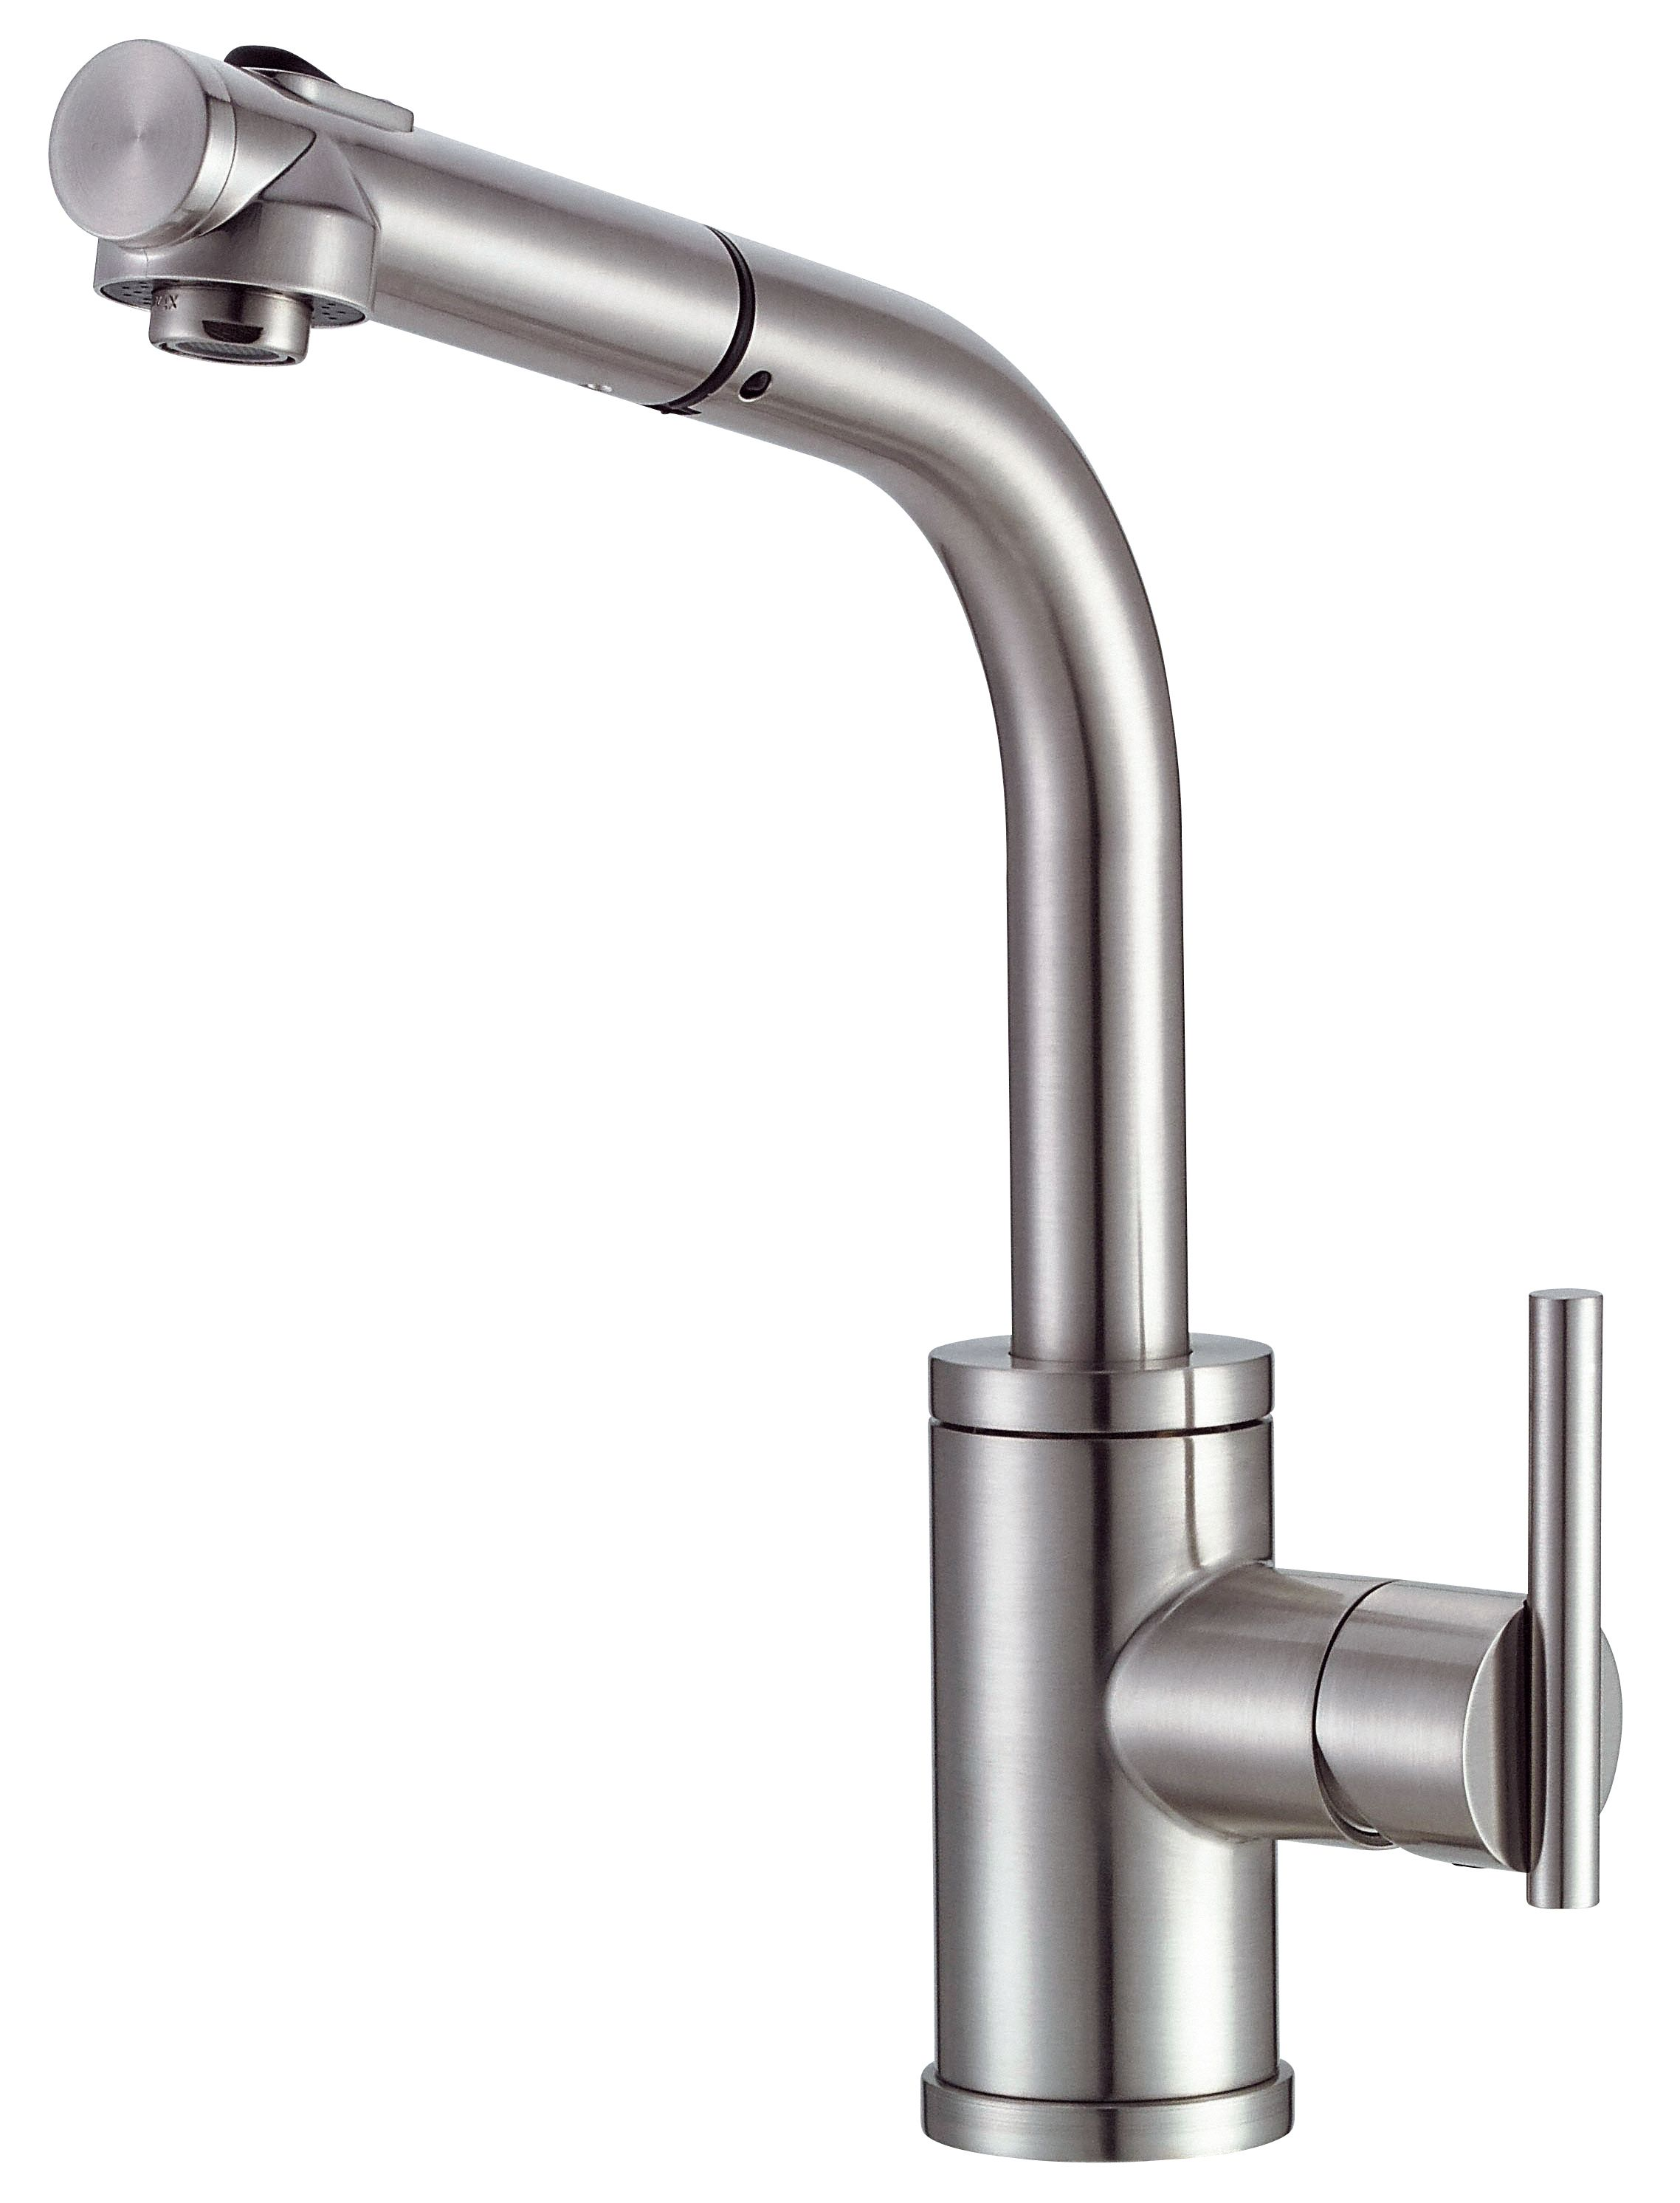 Danze Parma Stainless Steel Single Handle 1 Hole Pull out Spout